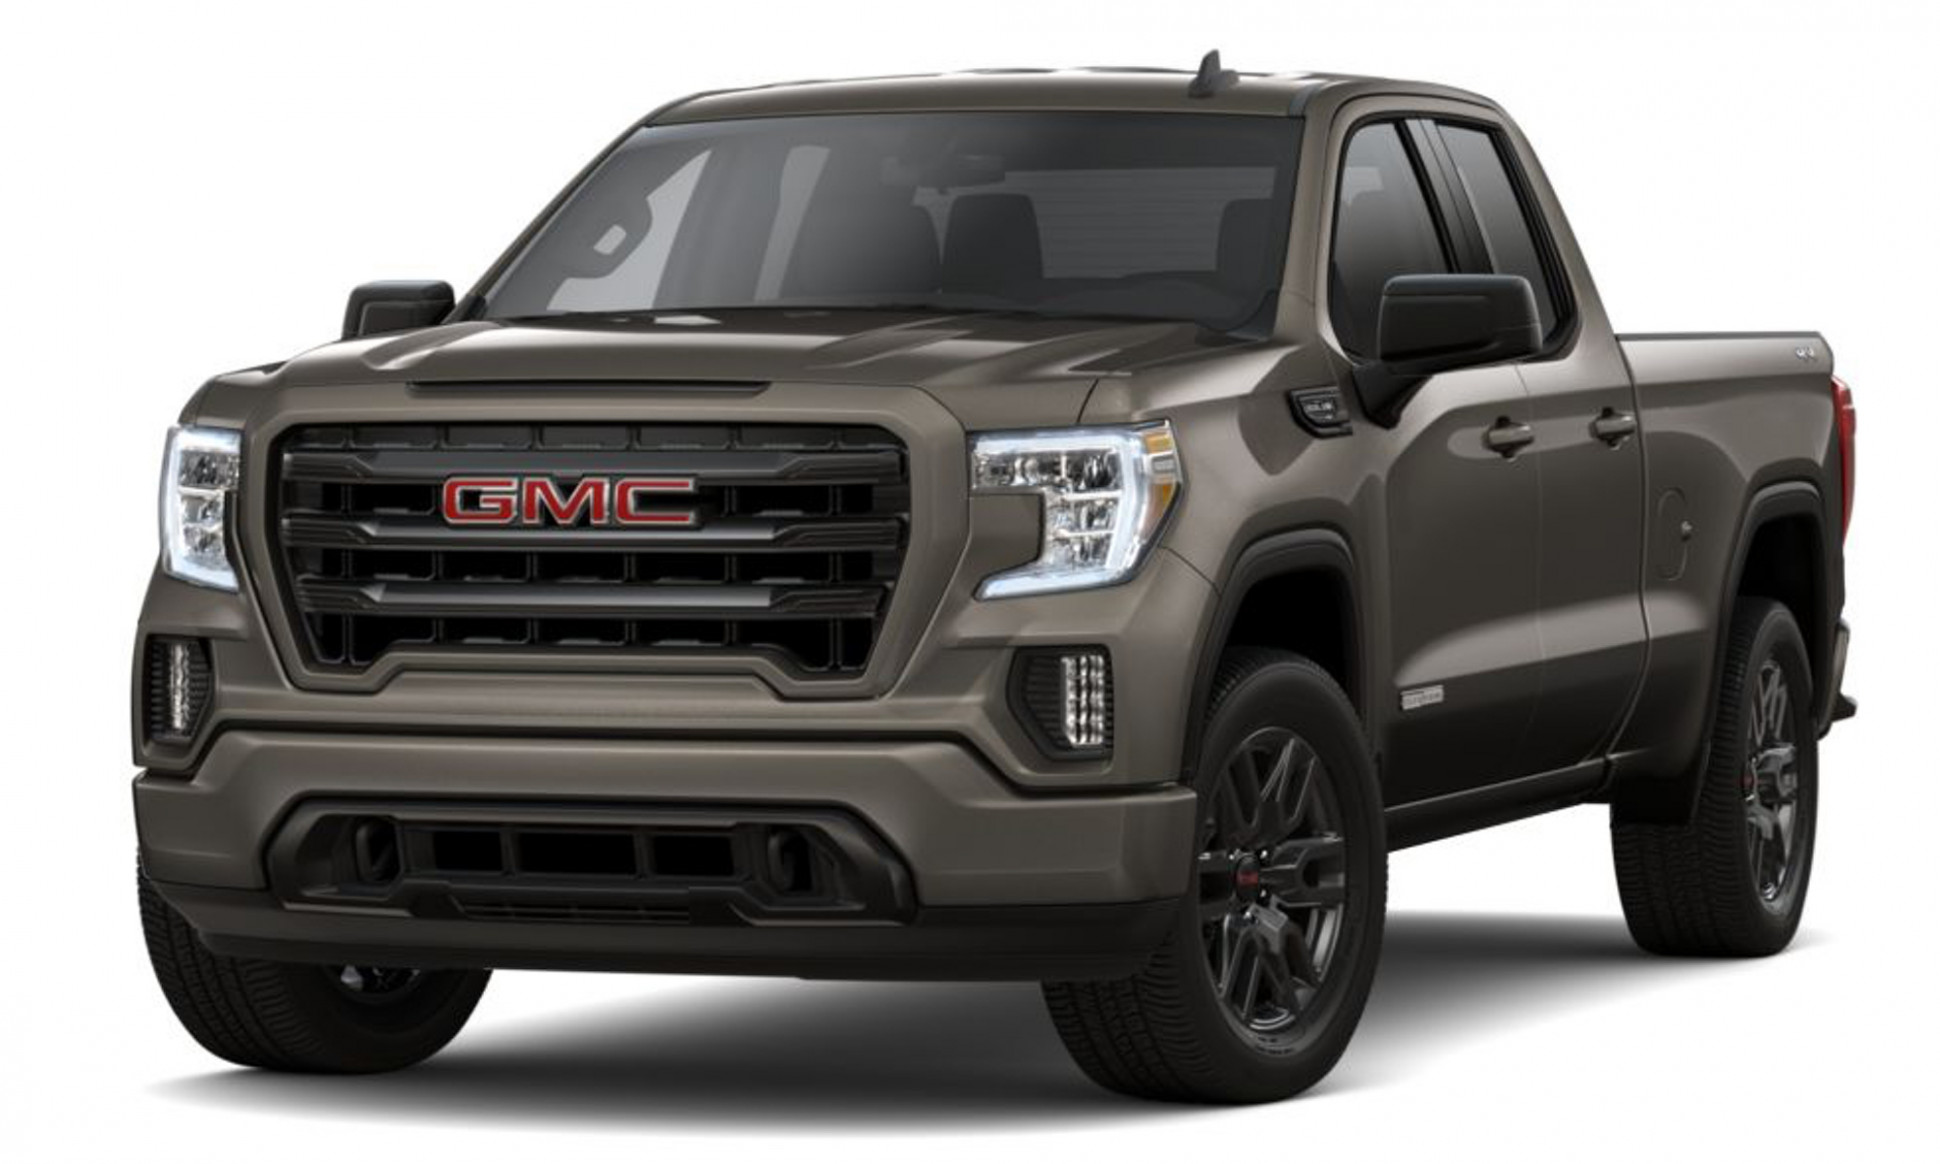 7 Sierra 7 Ditches This Paint Option, Gains New One | GM ..